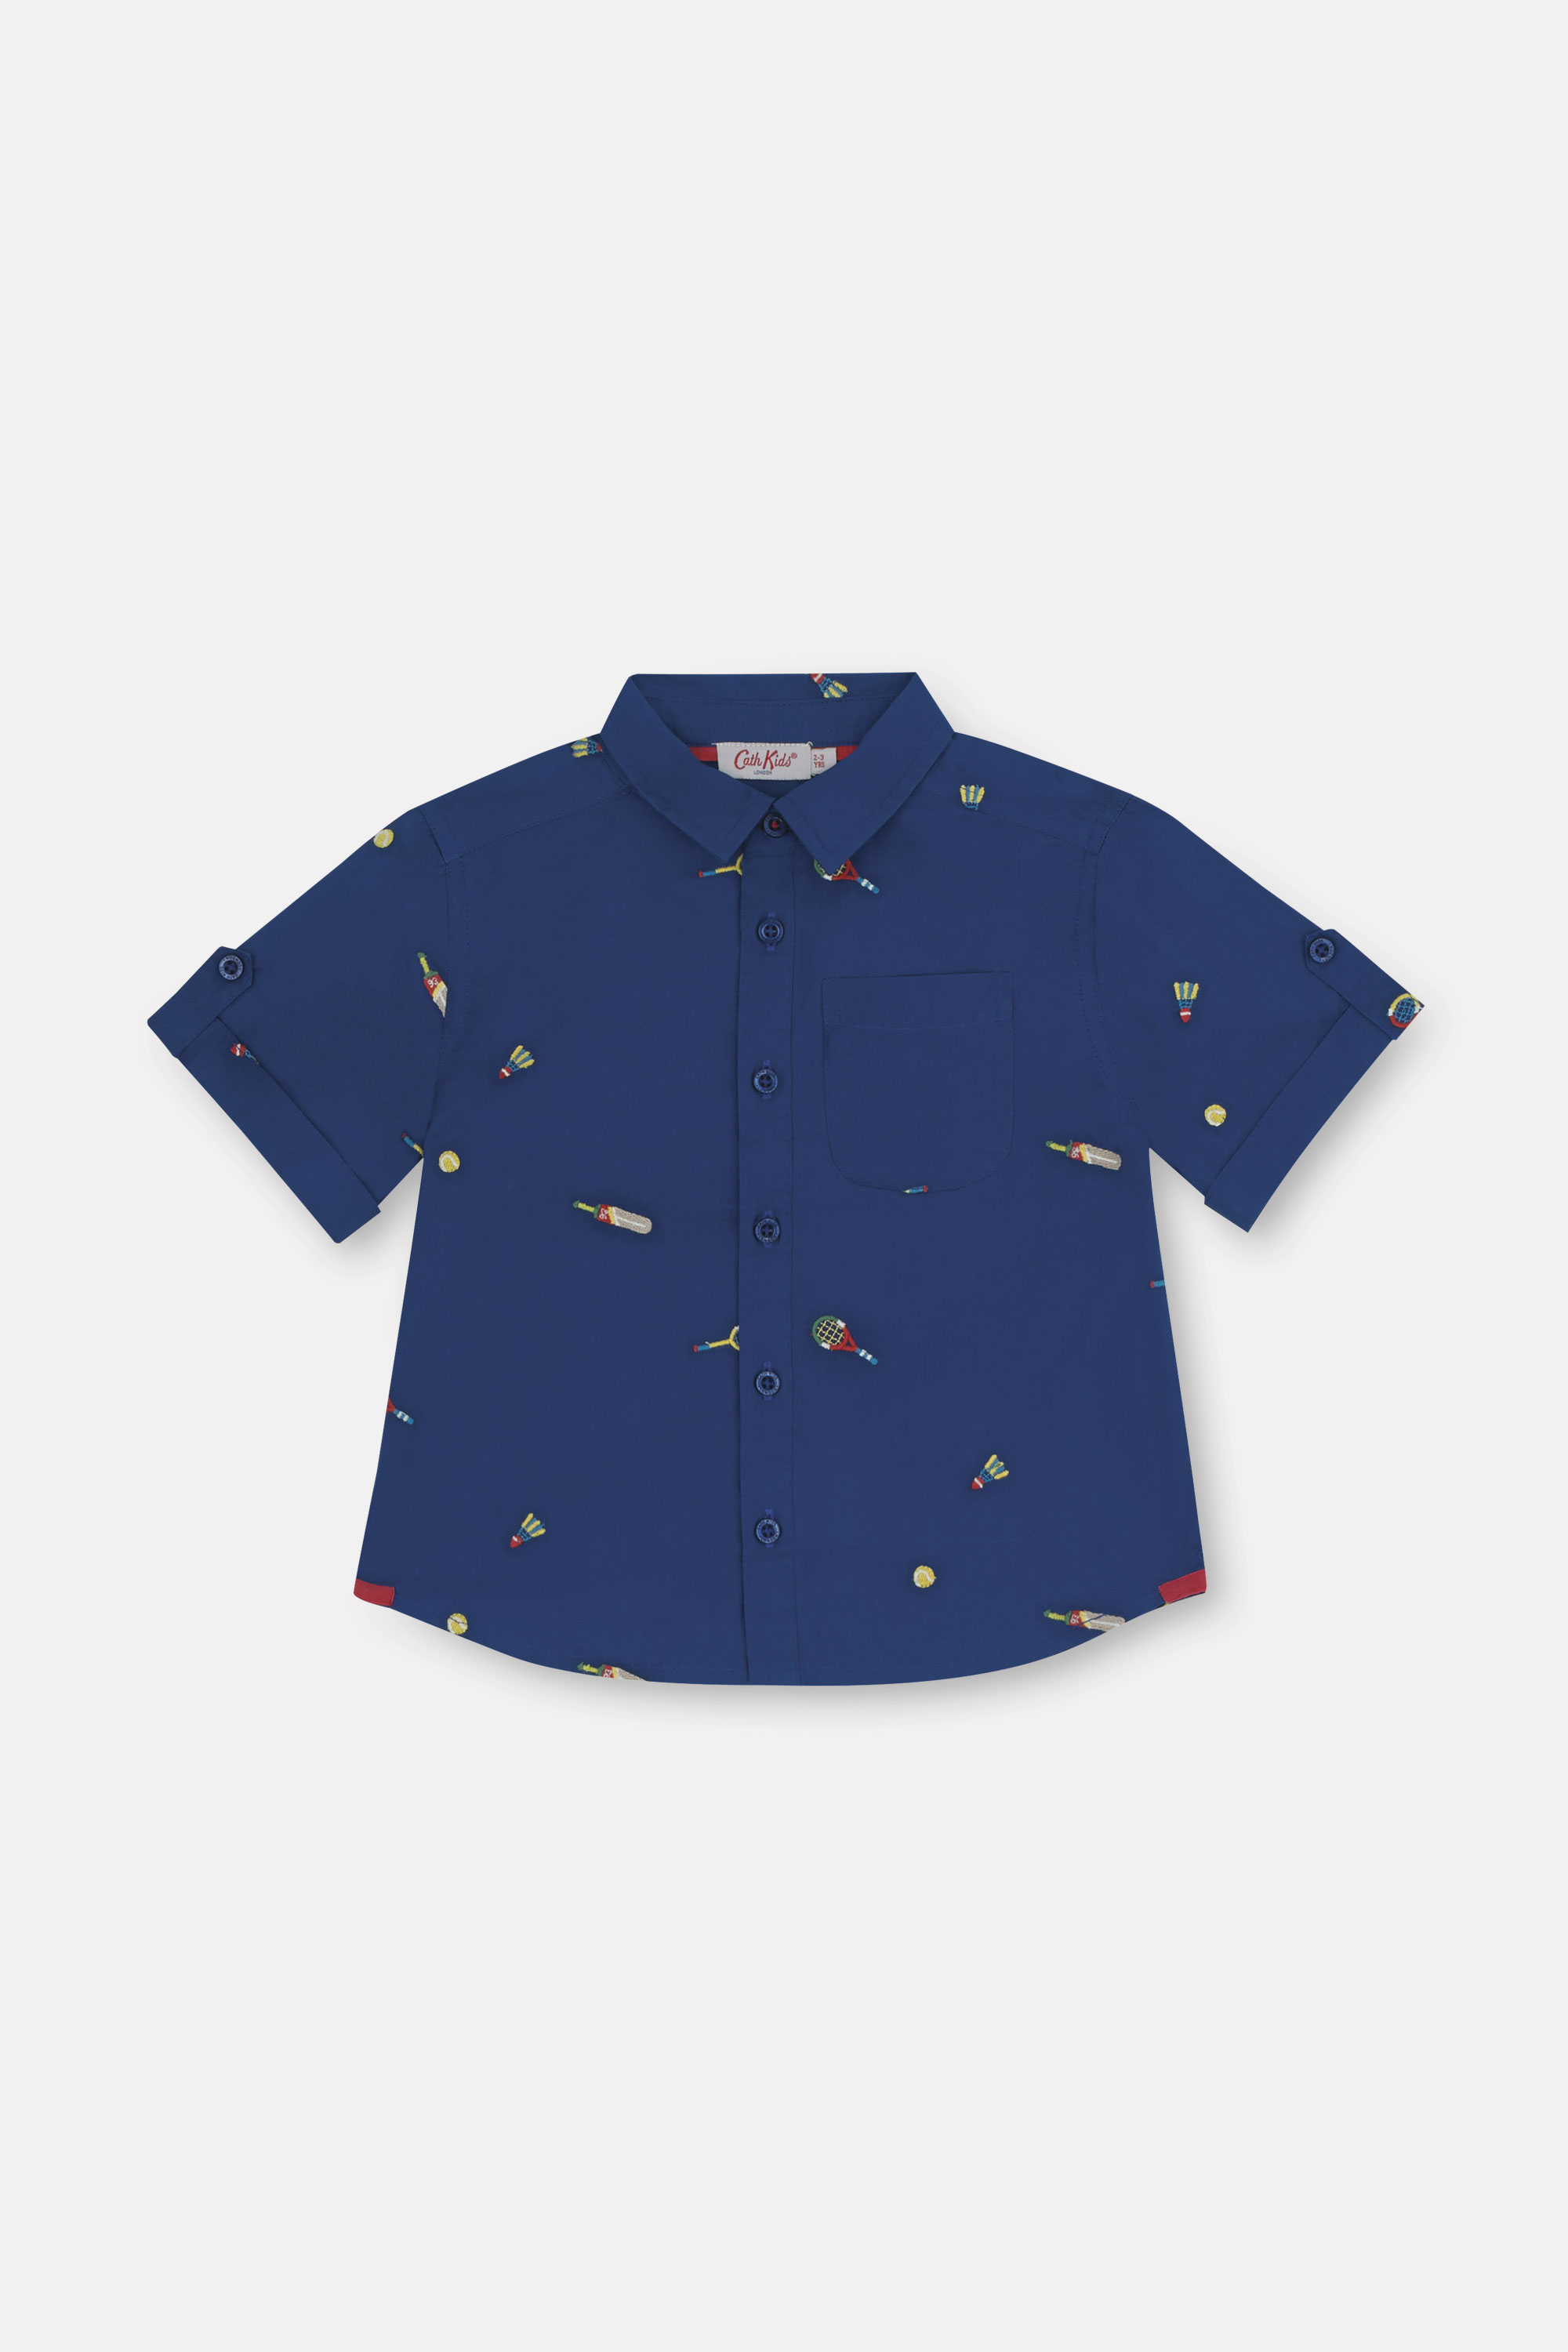 Cath Kidston Mini Sports Embroidered Short Sleeve Oliver Shirt in Dark Blue, 1-2 yr